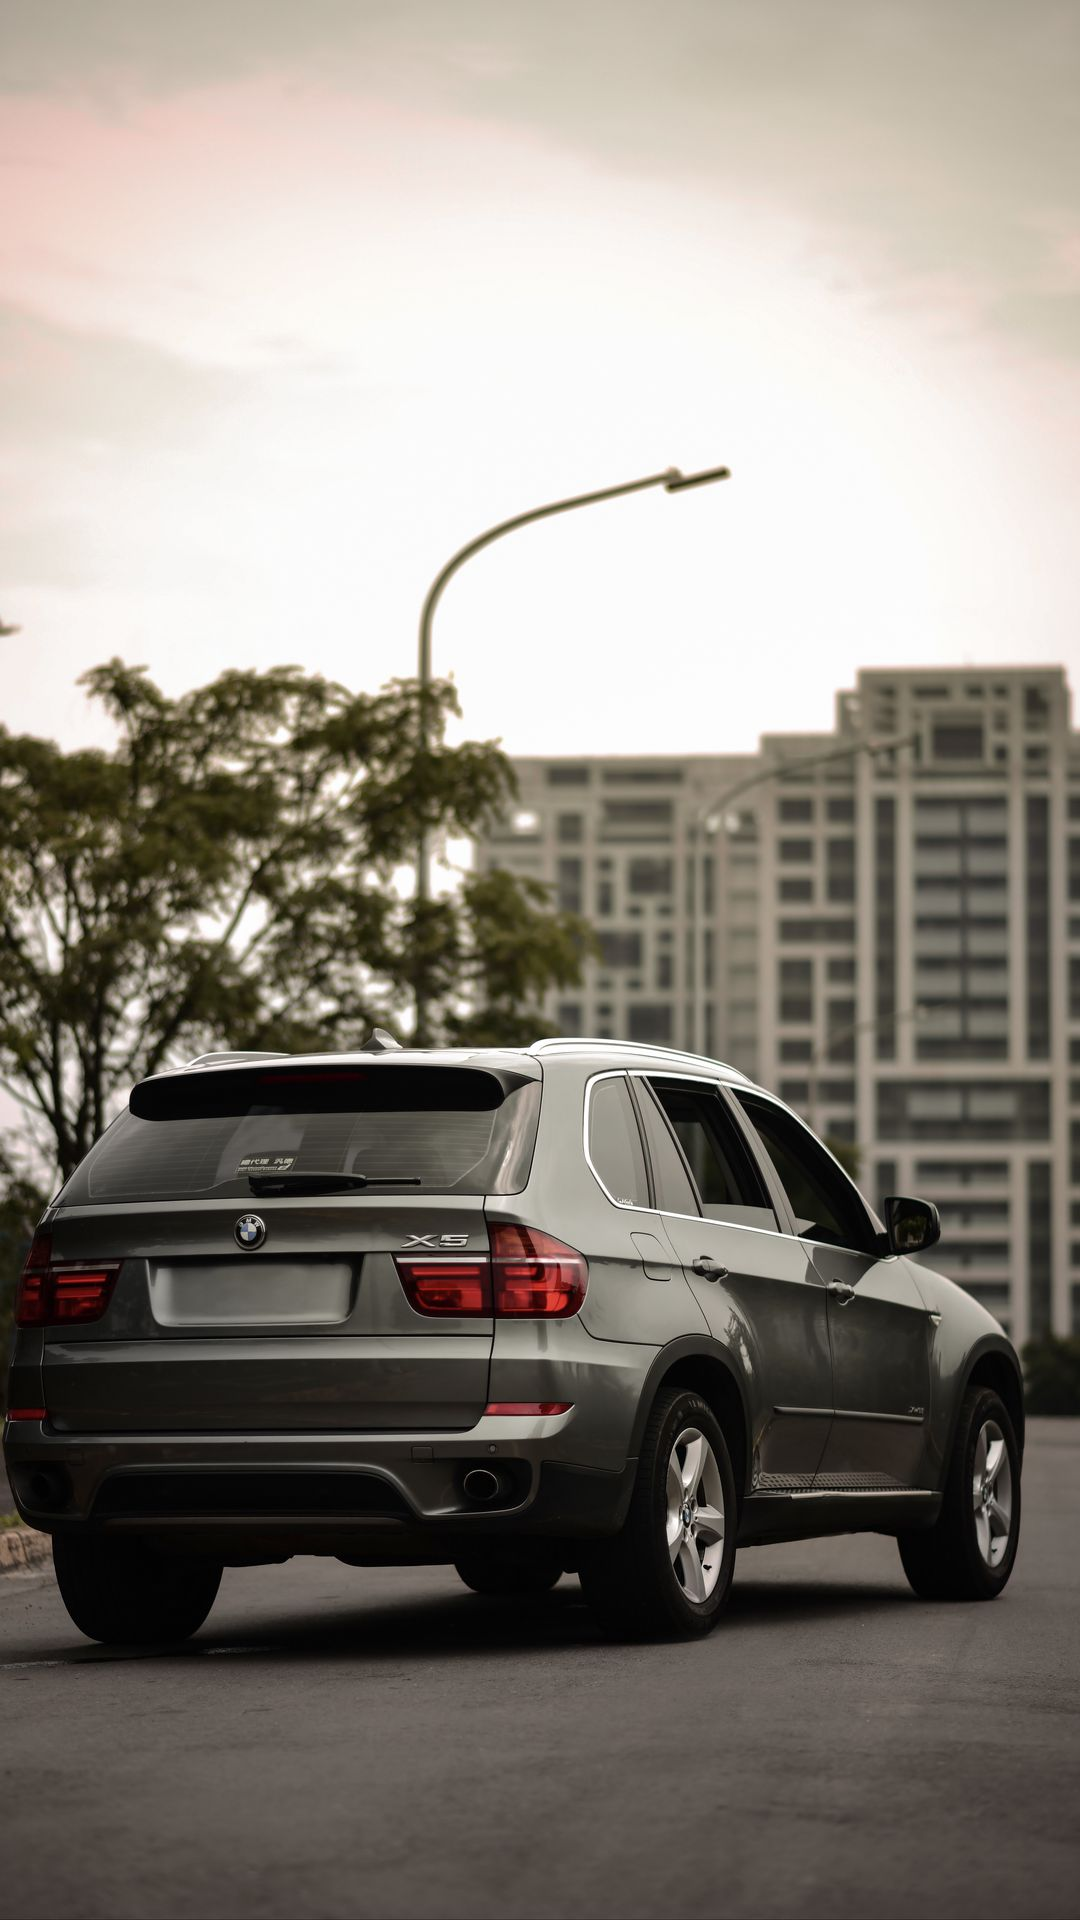 BMW X5 Suv Series Wallpapers Free Download